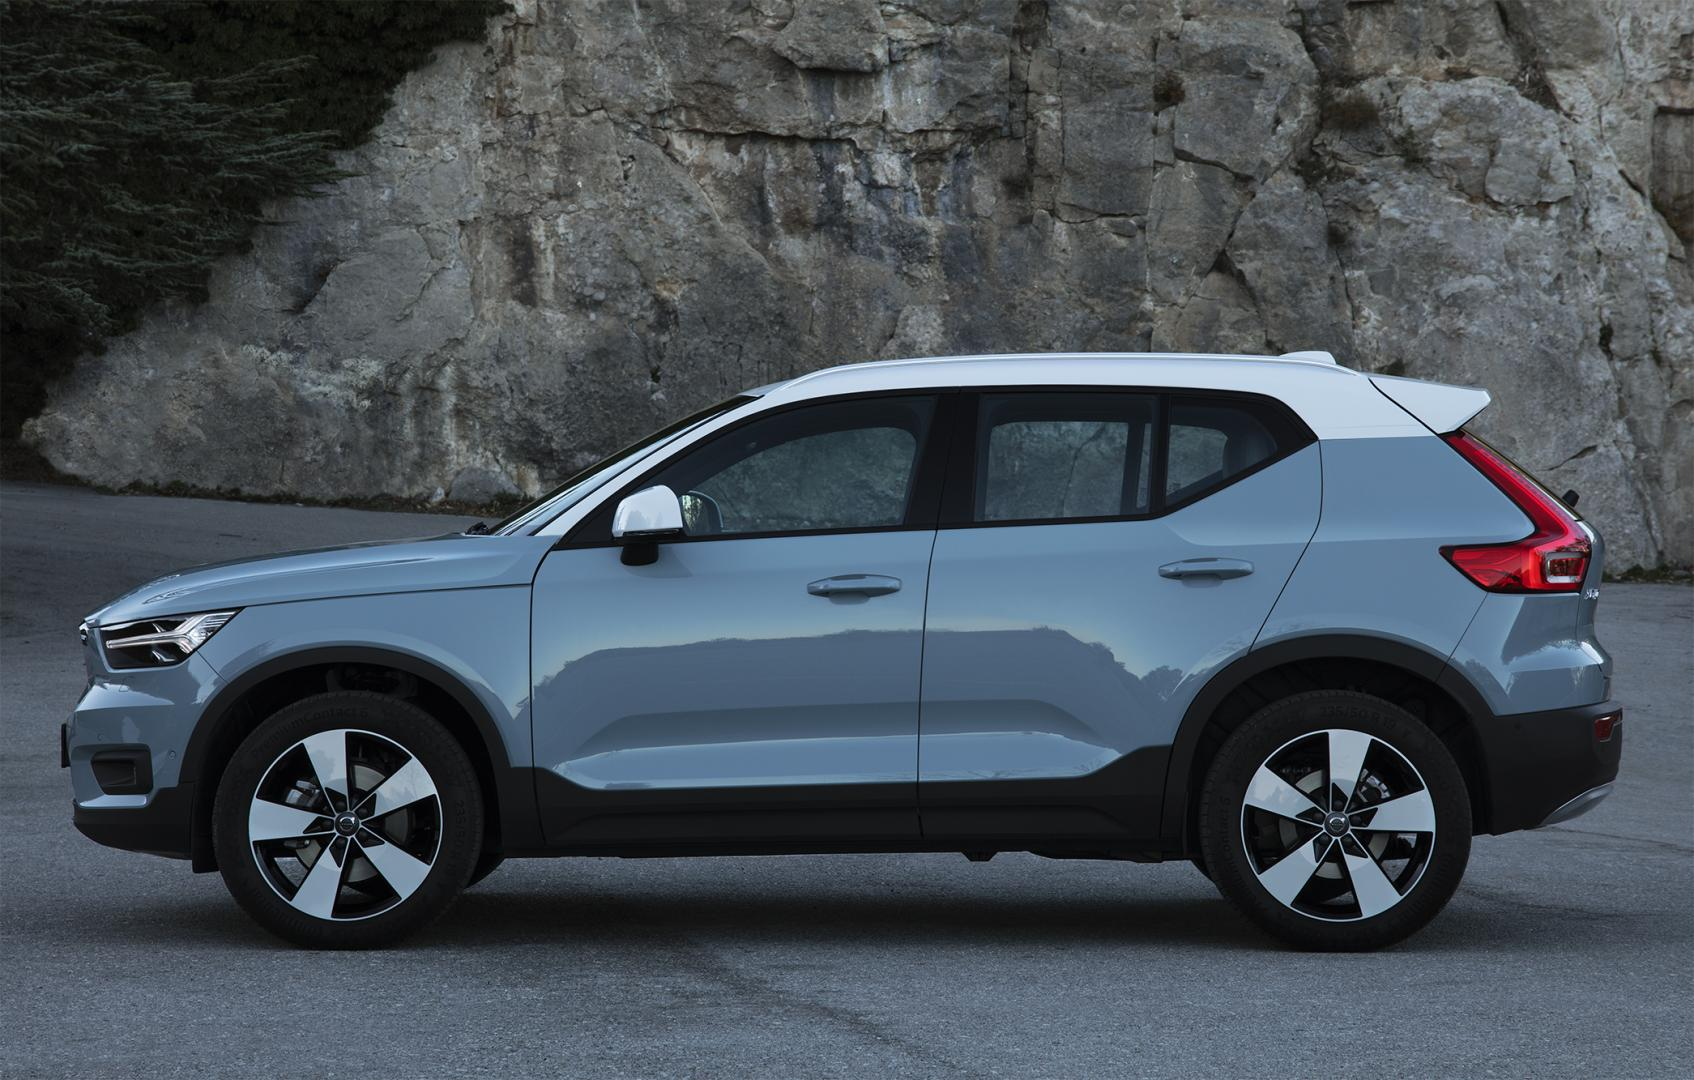 volvo xc40 2017 1e rij indruk topgear nederland. Black Bedroom Furniture Sets. Home Design Ideas